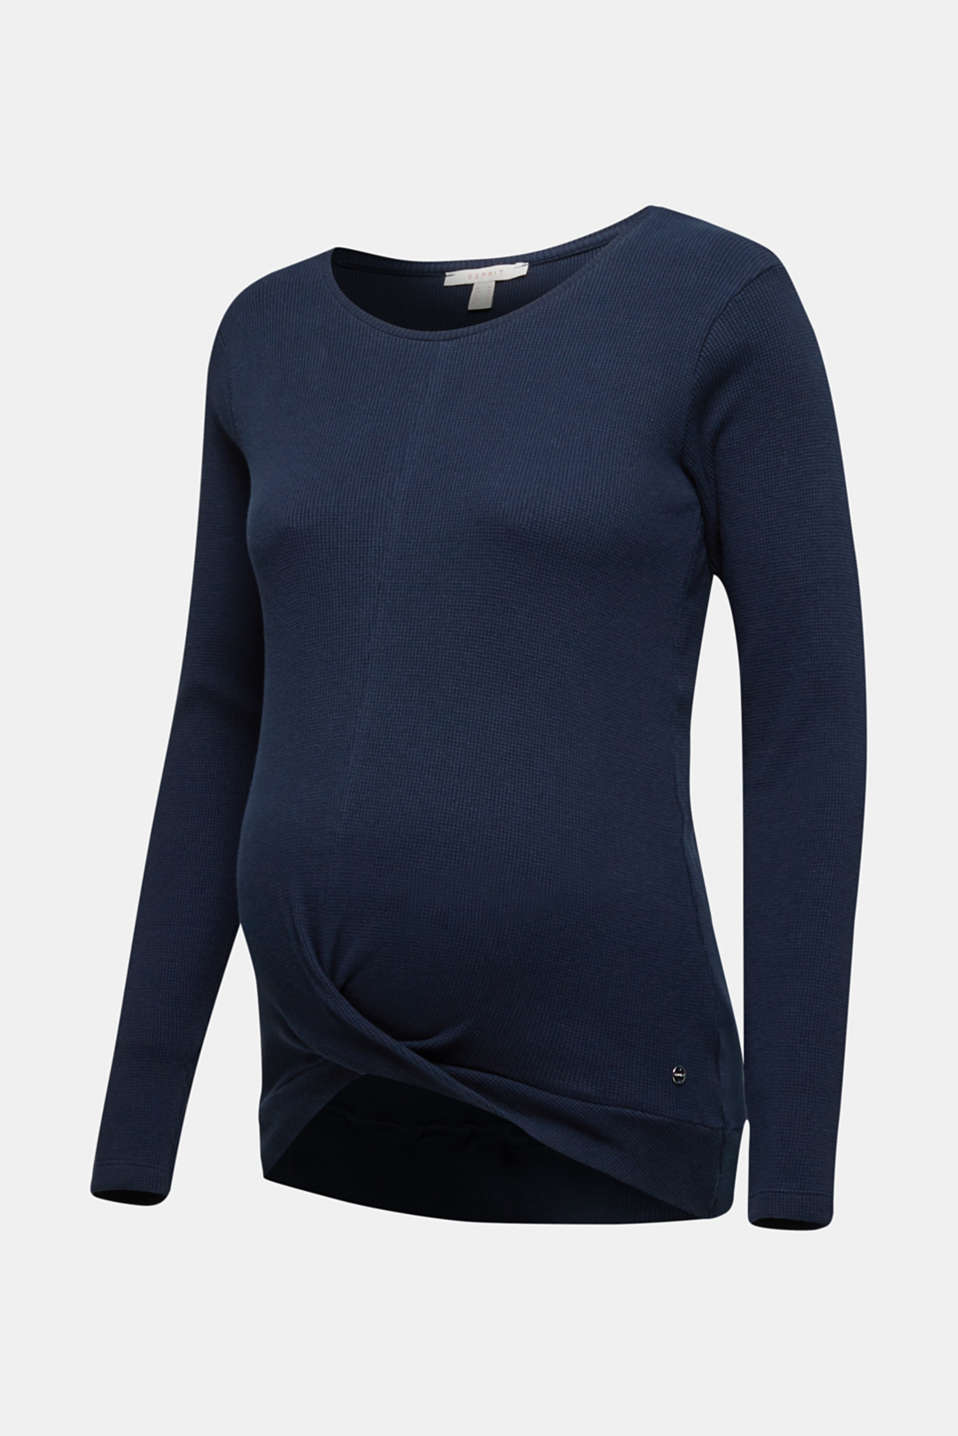 Piqué long sleeve top with a draped effect, 100% cotton, LCNIGHT BLUE, detail image number 6